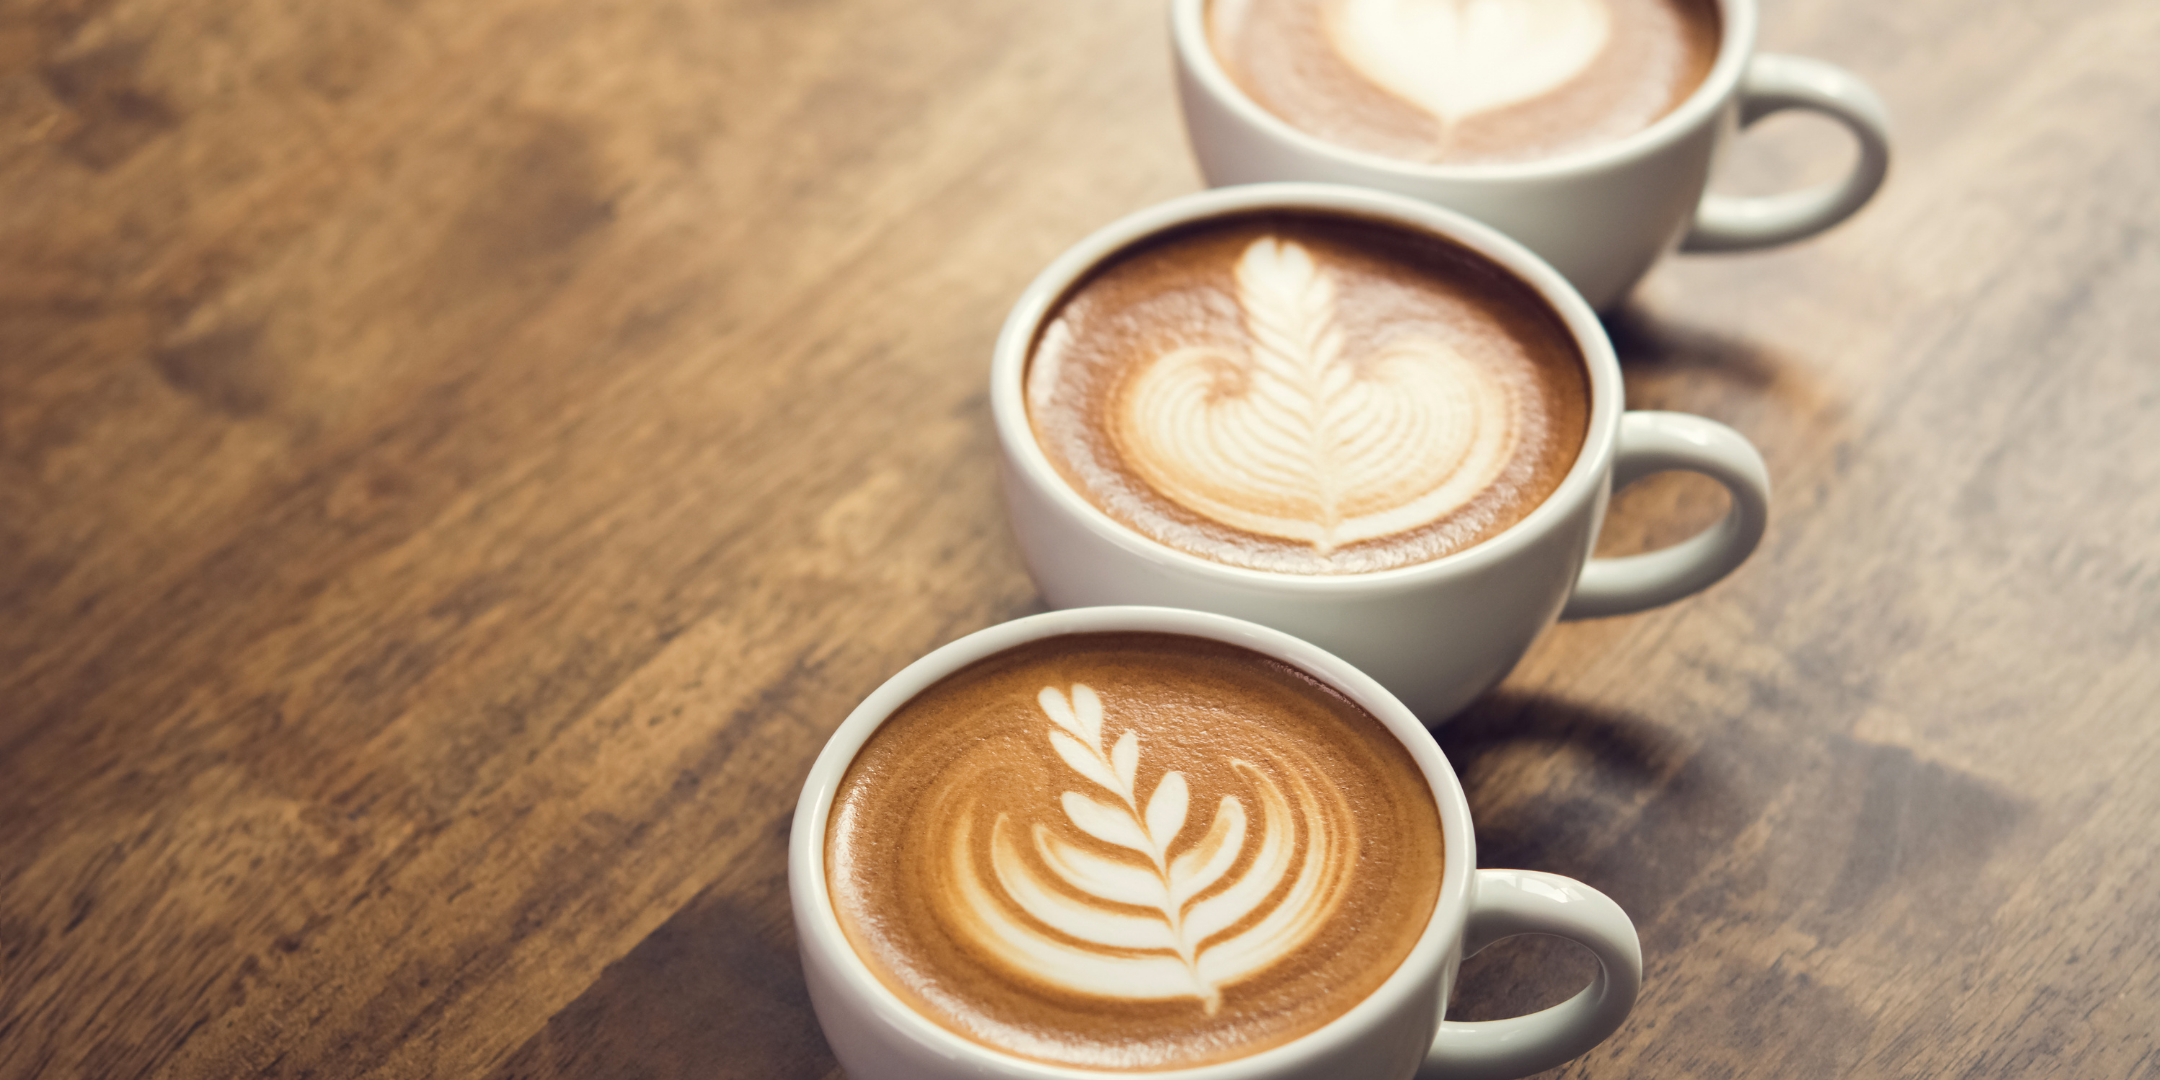 How to Froth Milk For Espresso Based Coffee